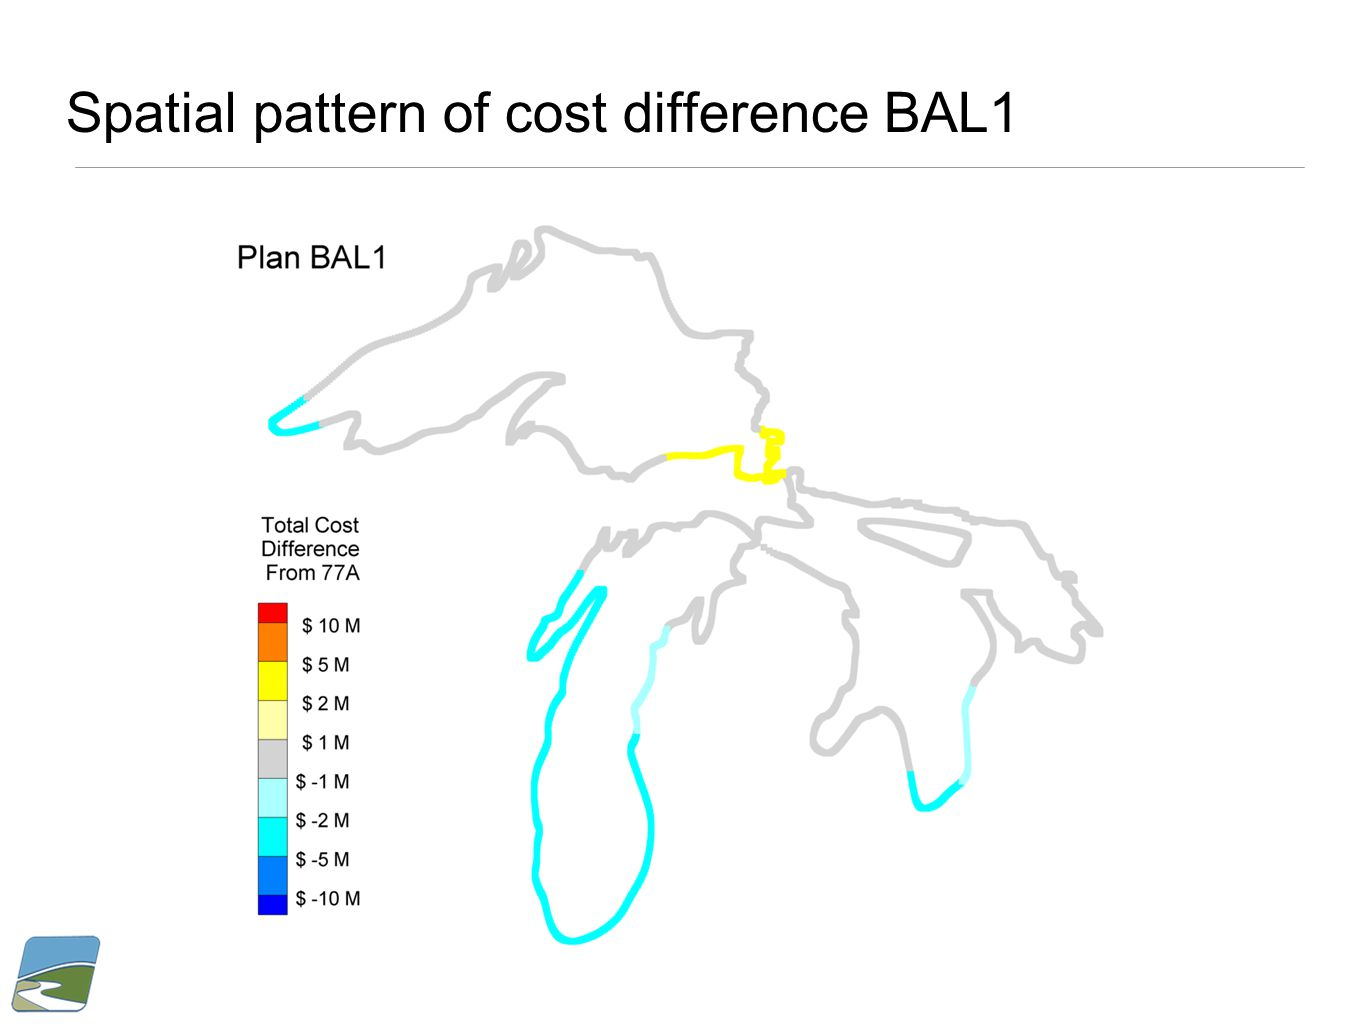 Spatial pattern of cost difference BAL1